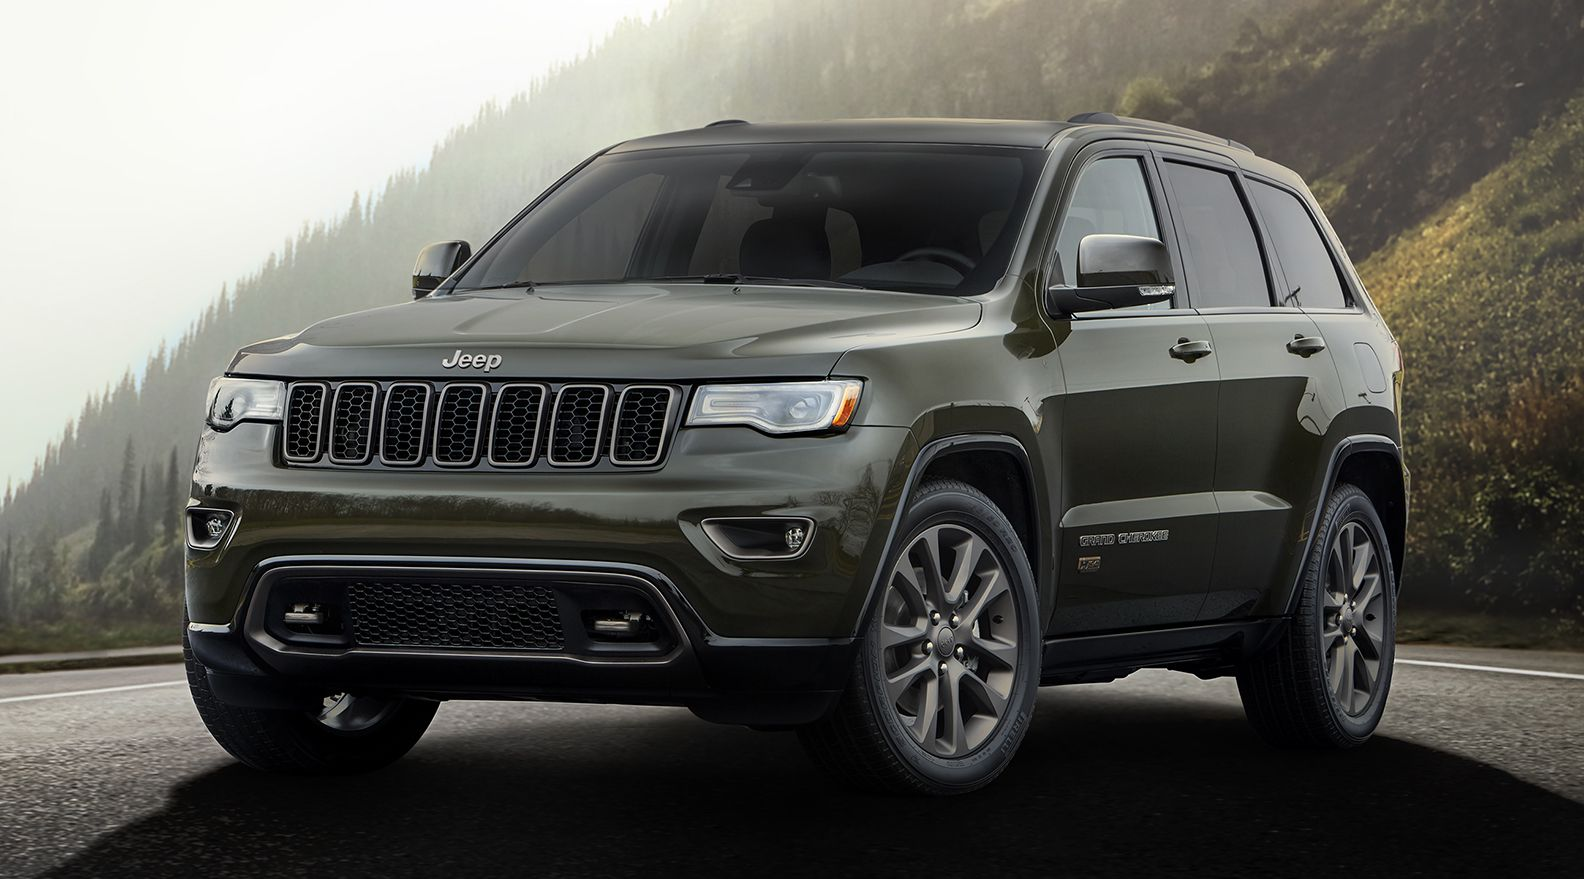 Jeep Grand Cherokee 75th Anniversary Edition Drives Nicely And Looks Food Jeep Grand Jeep Grand Cherokee Jeep